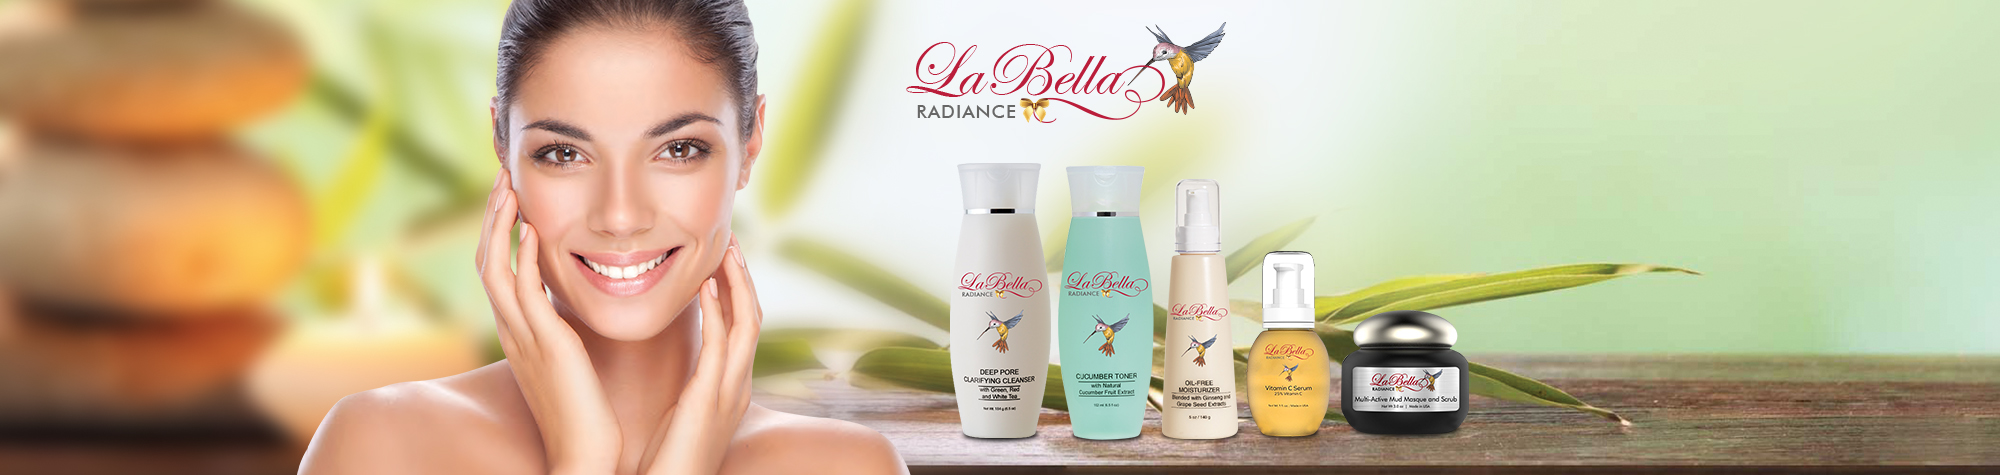 La Bella Radiance